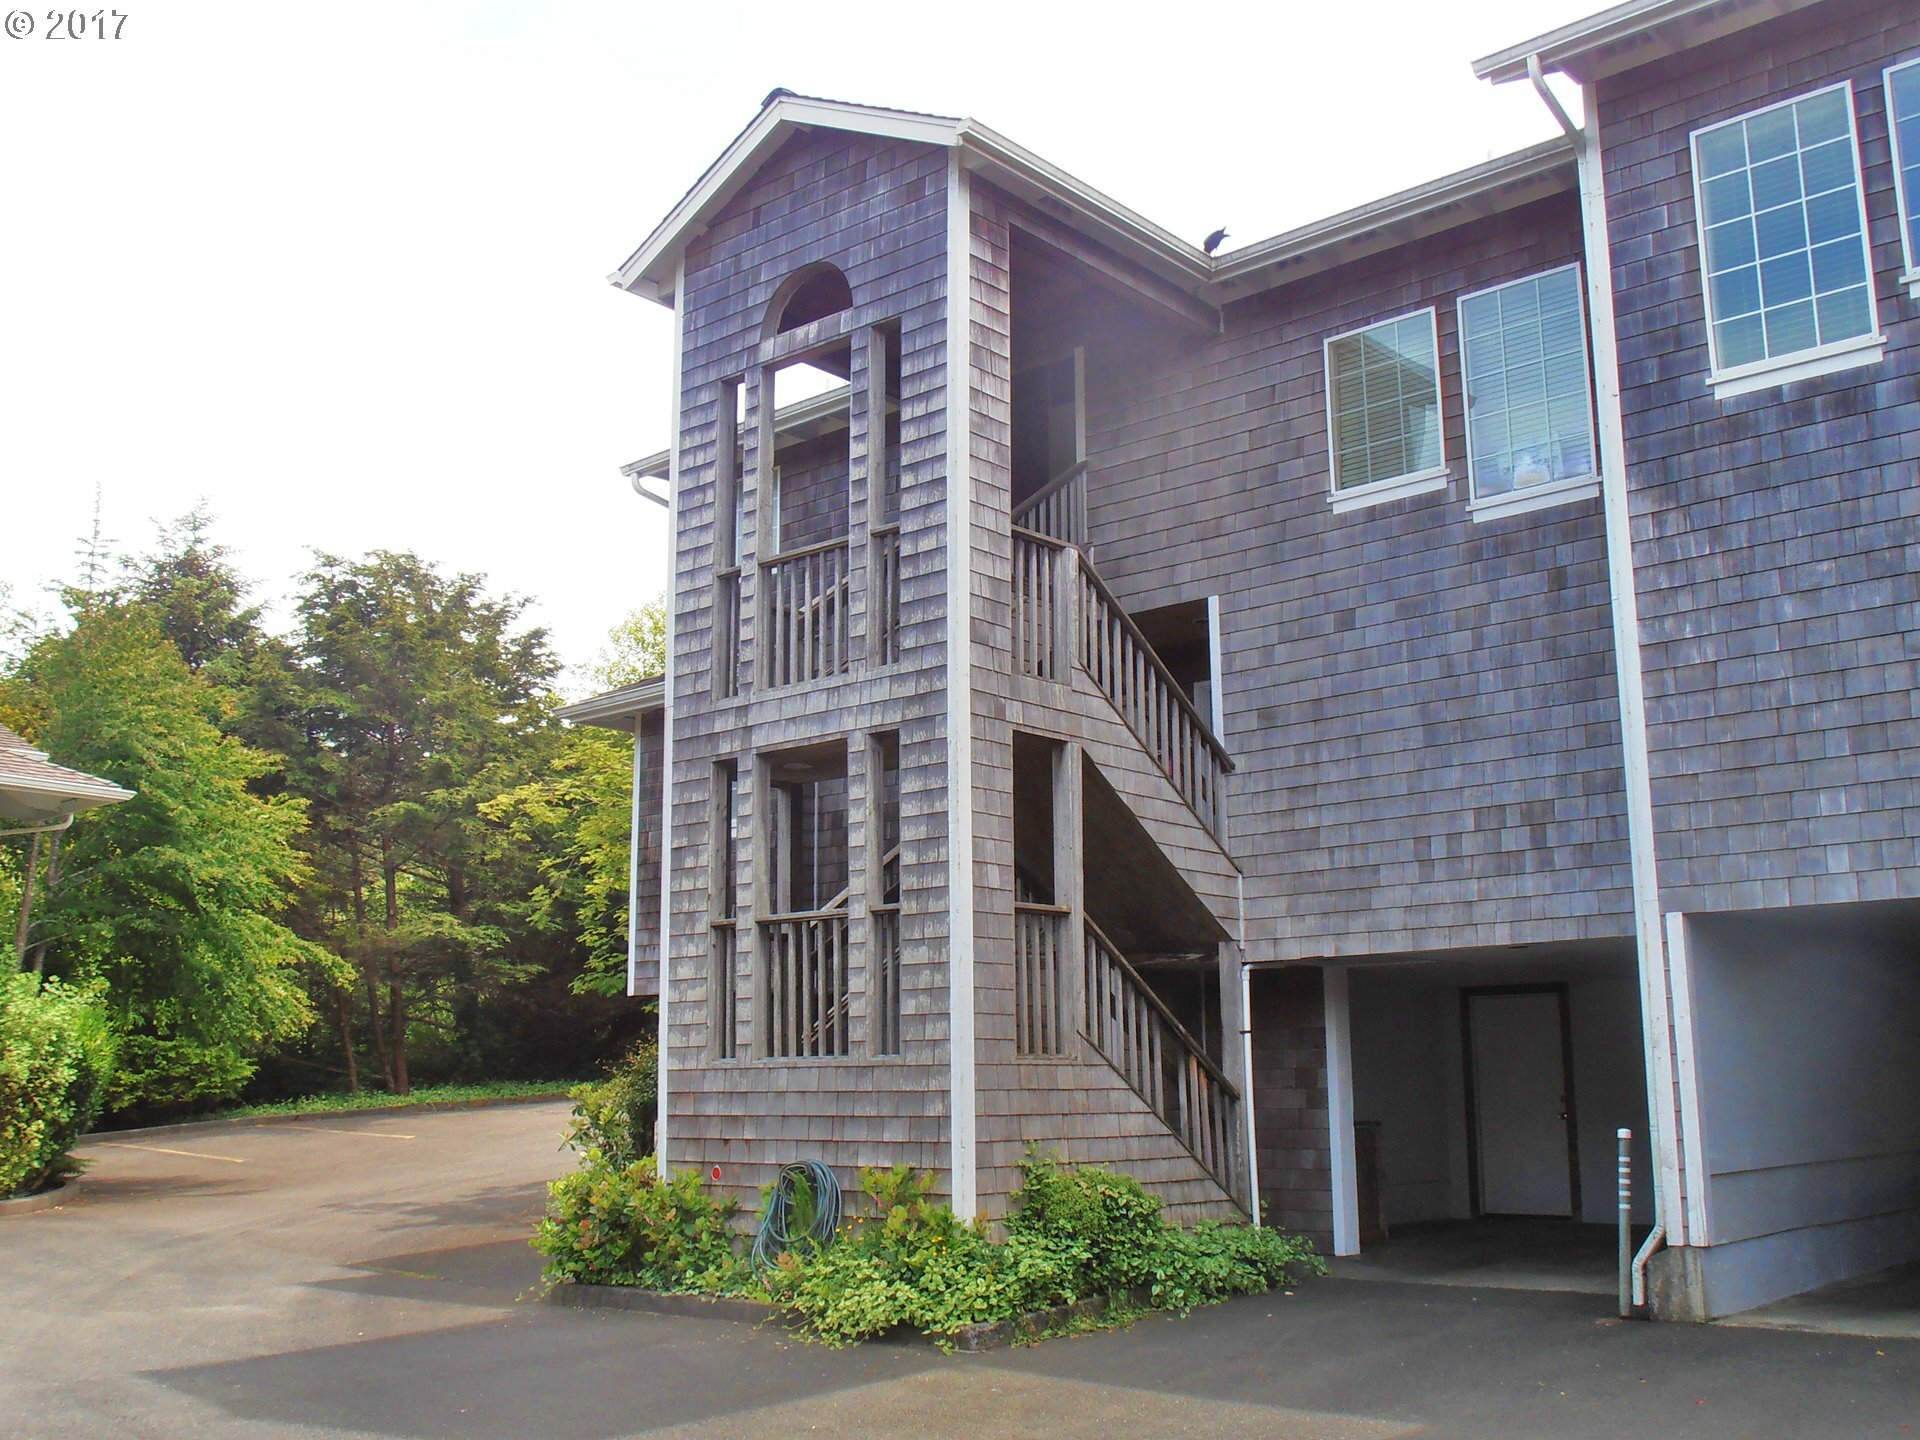 160 E Siuslaw St 3, Cannon Beach, OR - USA (photo 1)